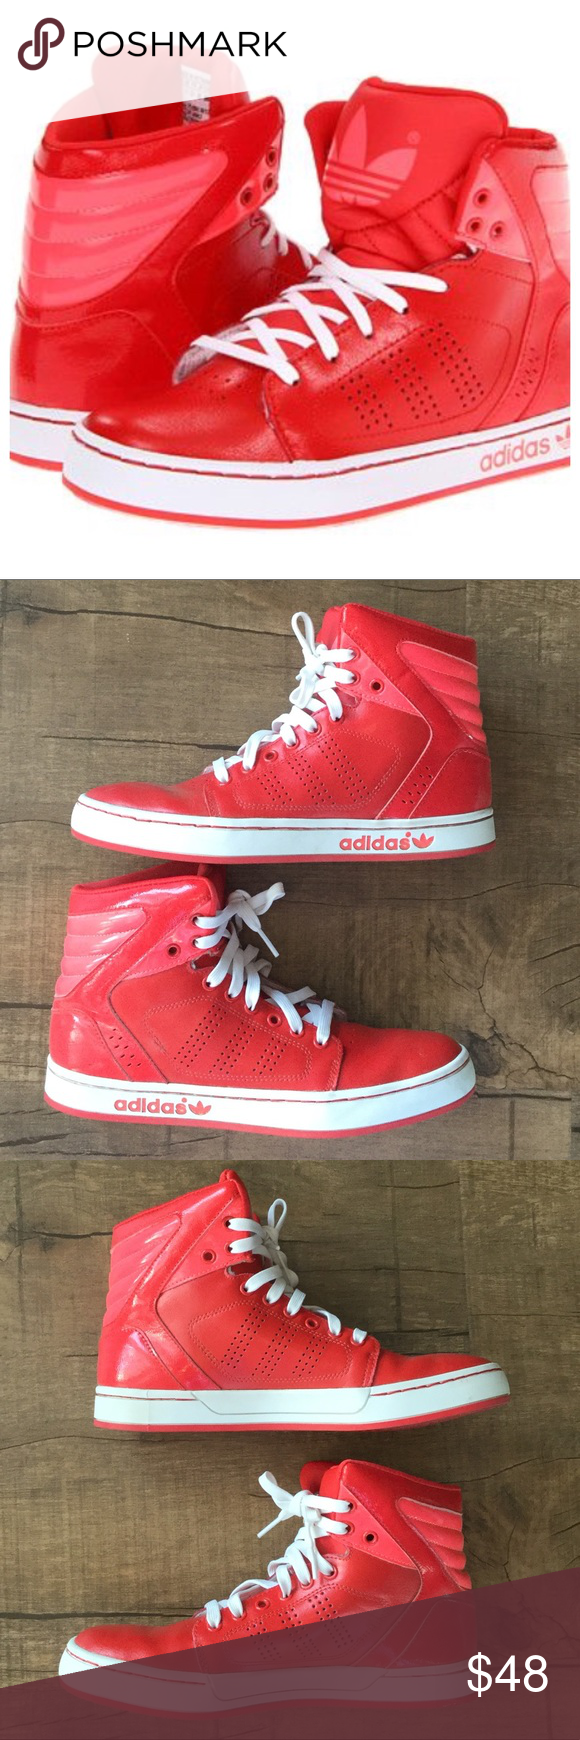 8d99d9832f8 NWOT Adidas Originals Adi High Ext J Sneakers Only worn once rad red